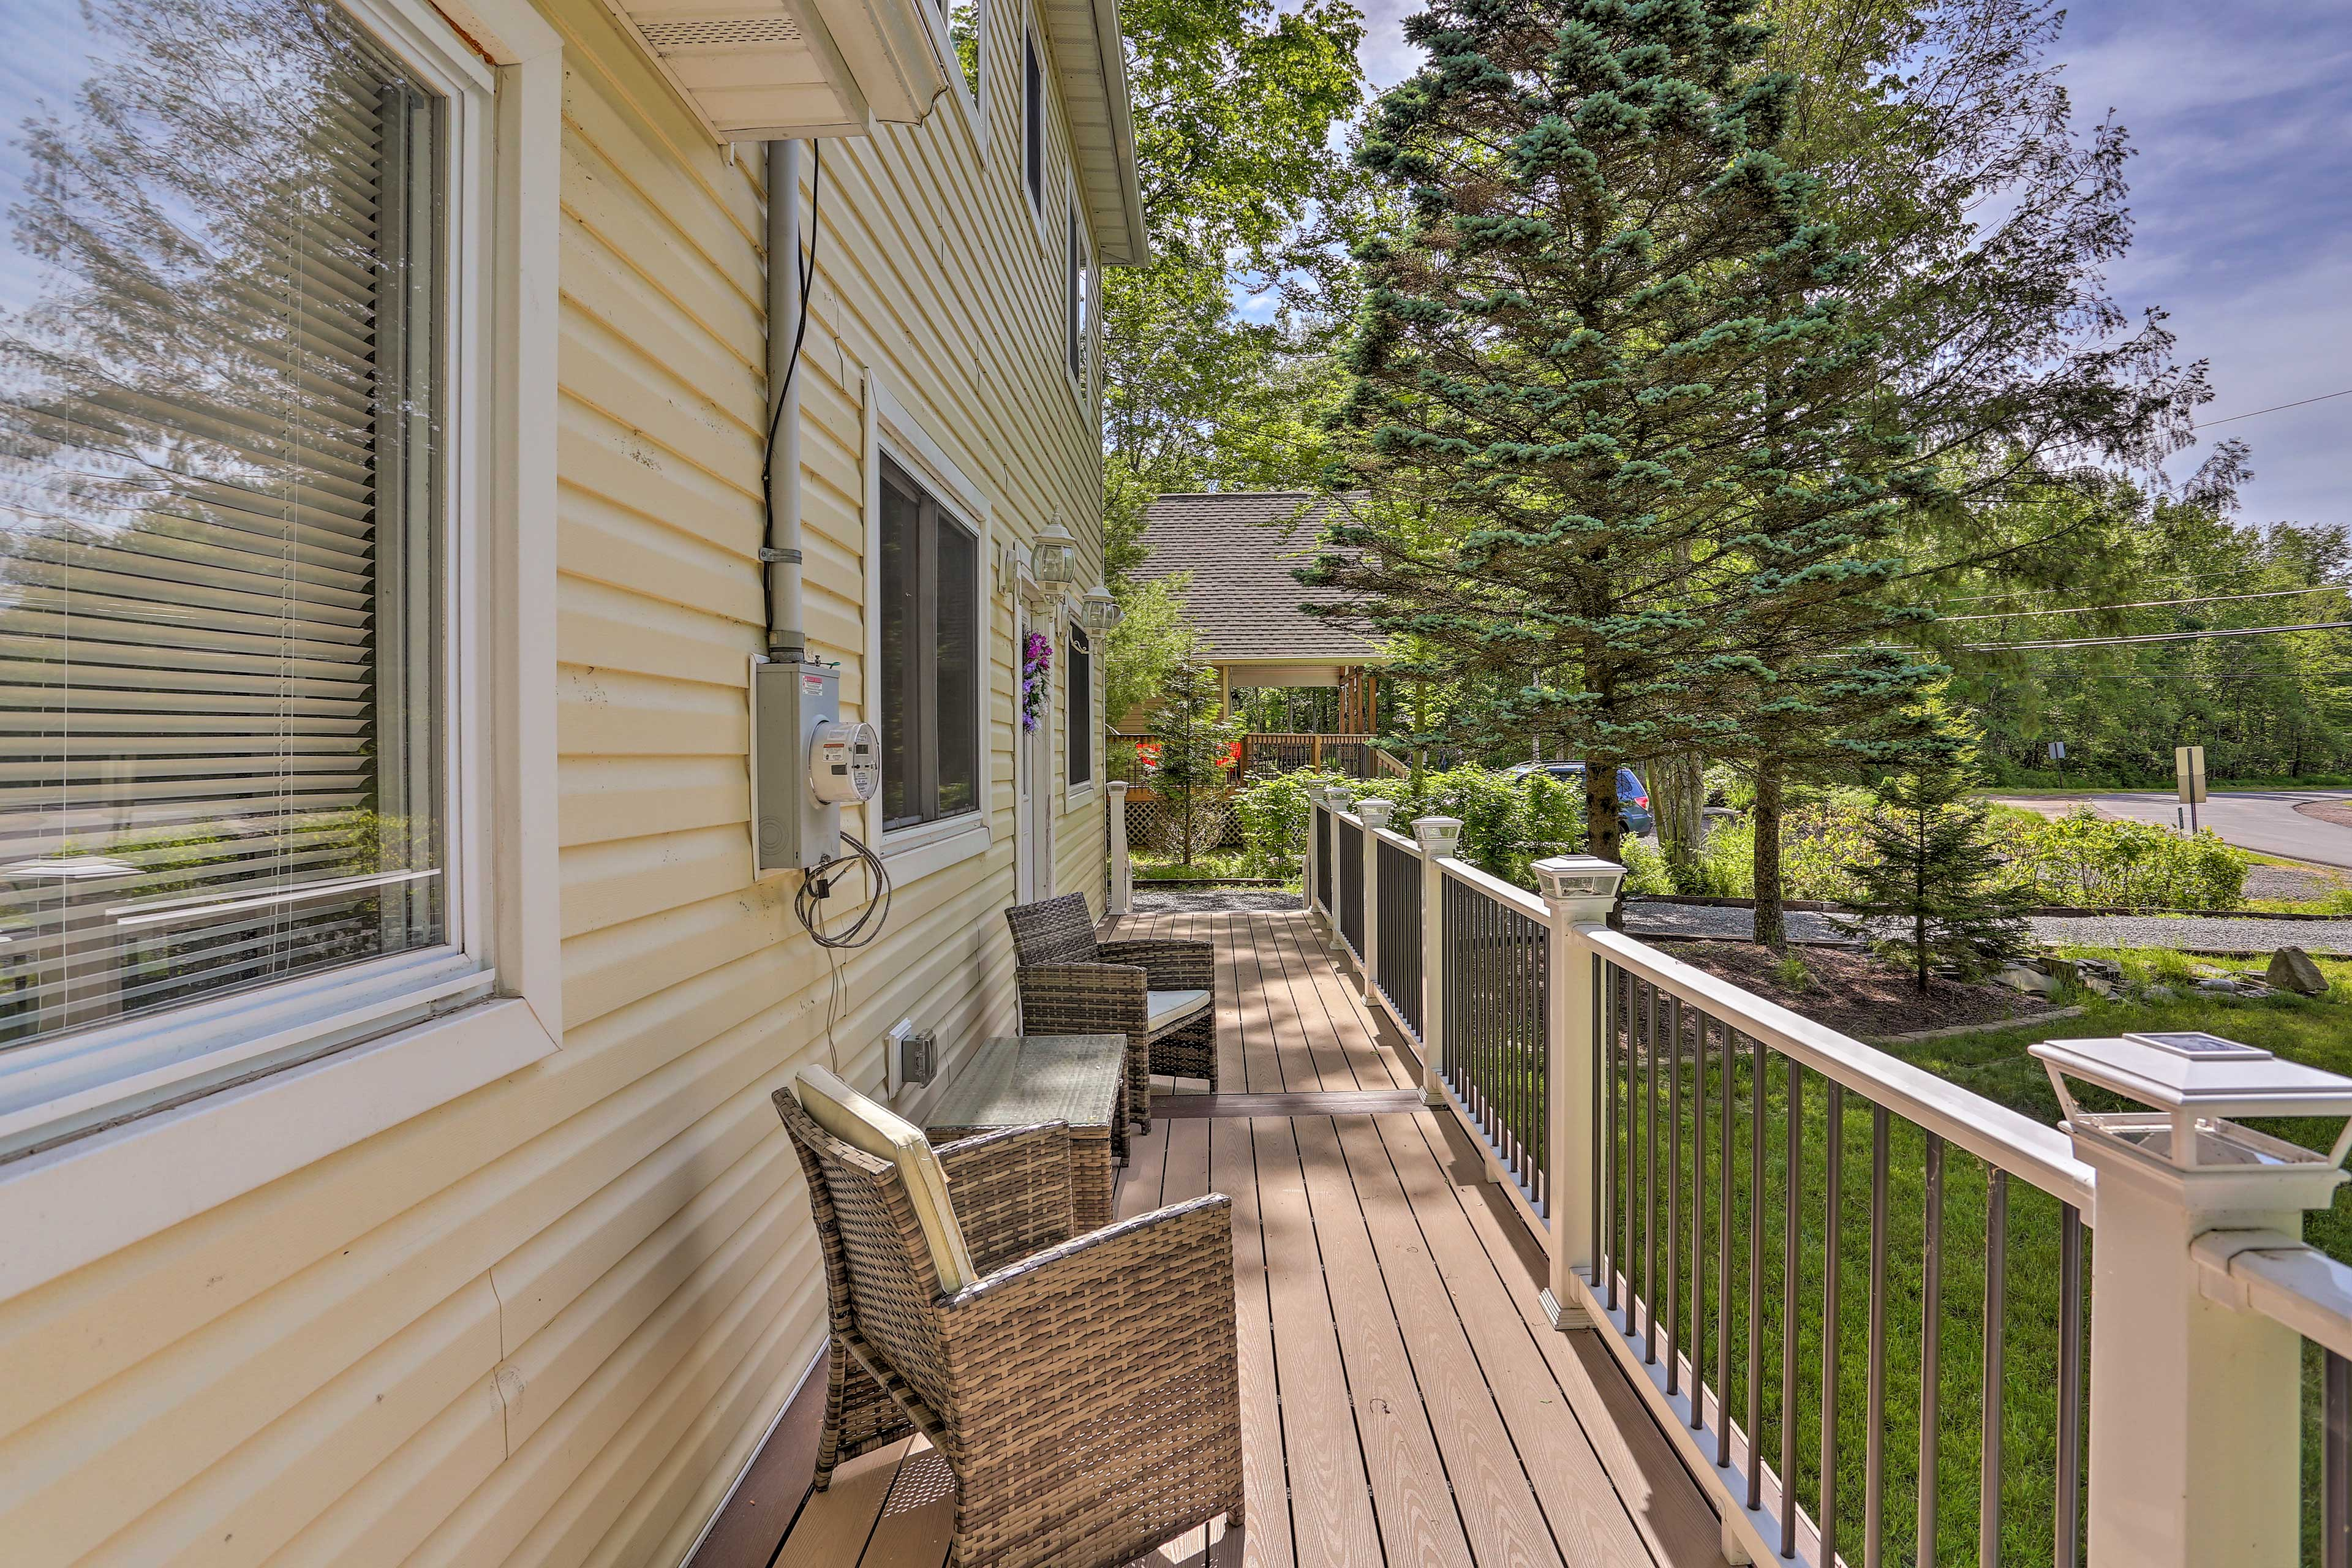 Admire nature's beauty from the spacious front porch!